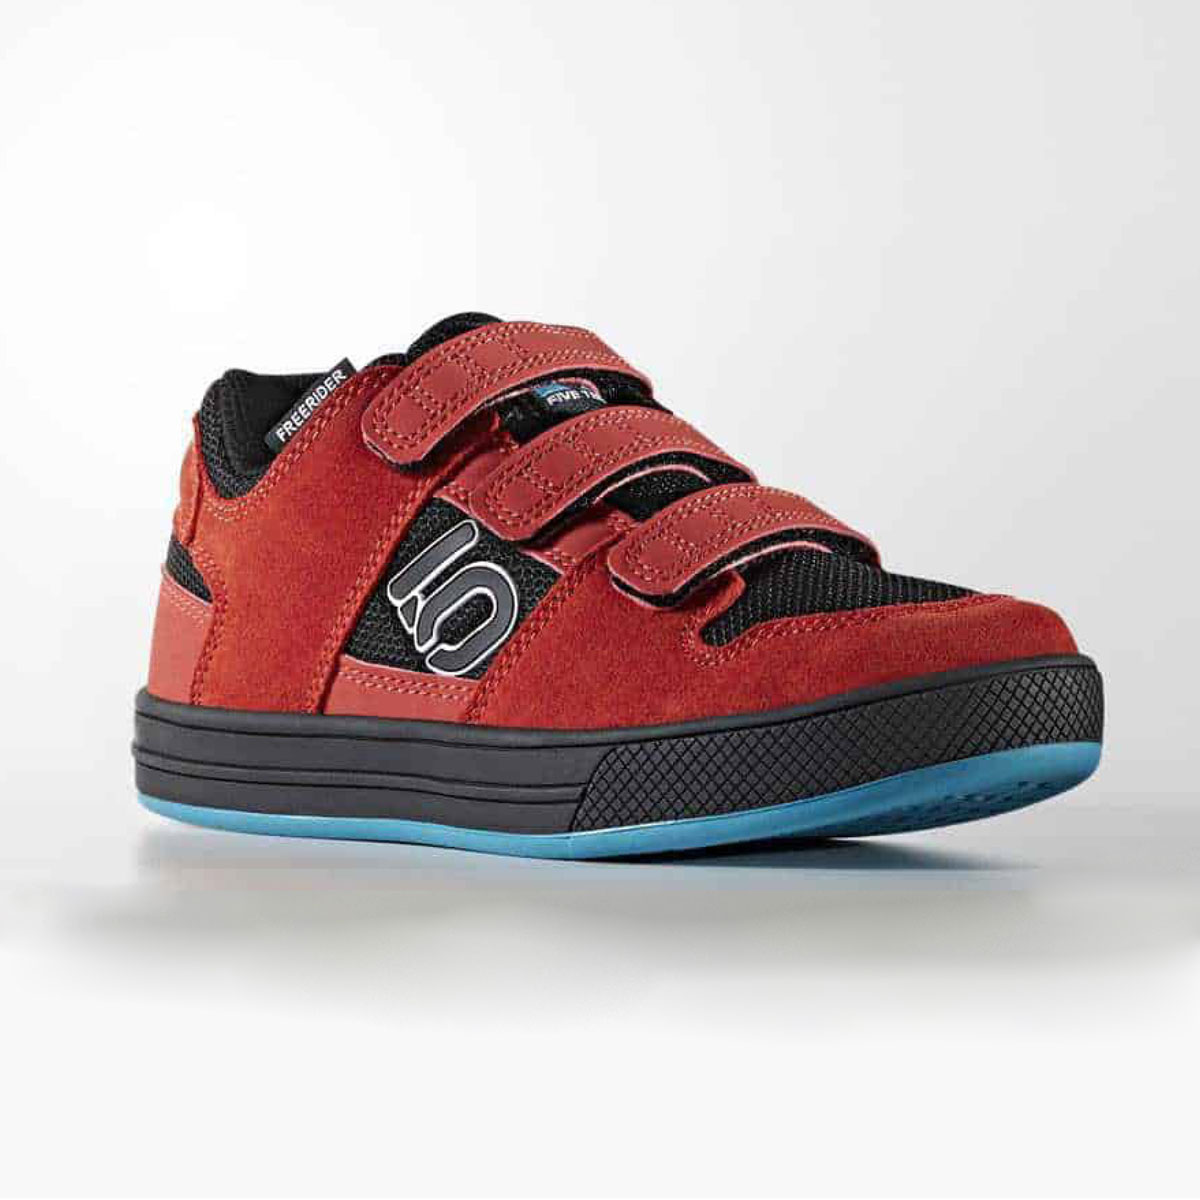 a2cbbed0ca25a3 Five Ten Freerider VCS Kids Shoes Red £44.00